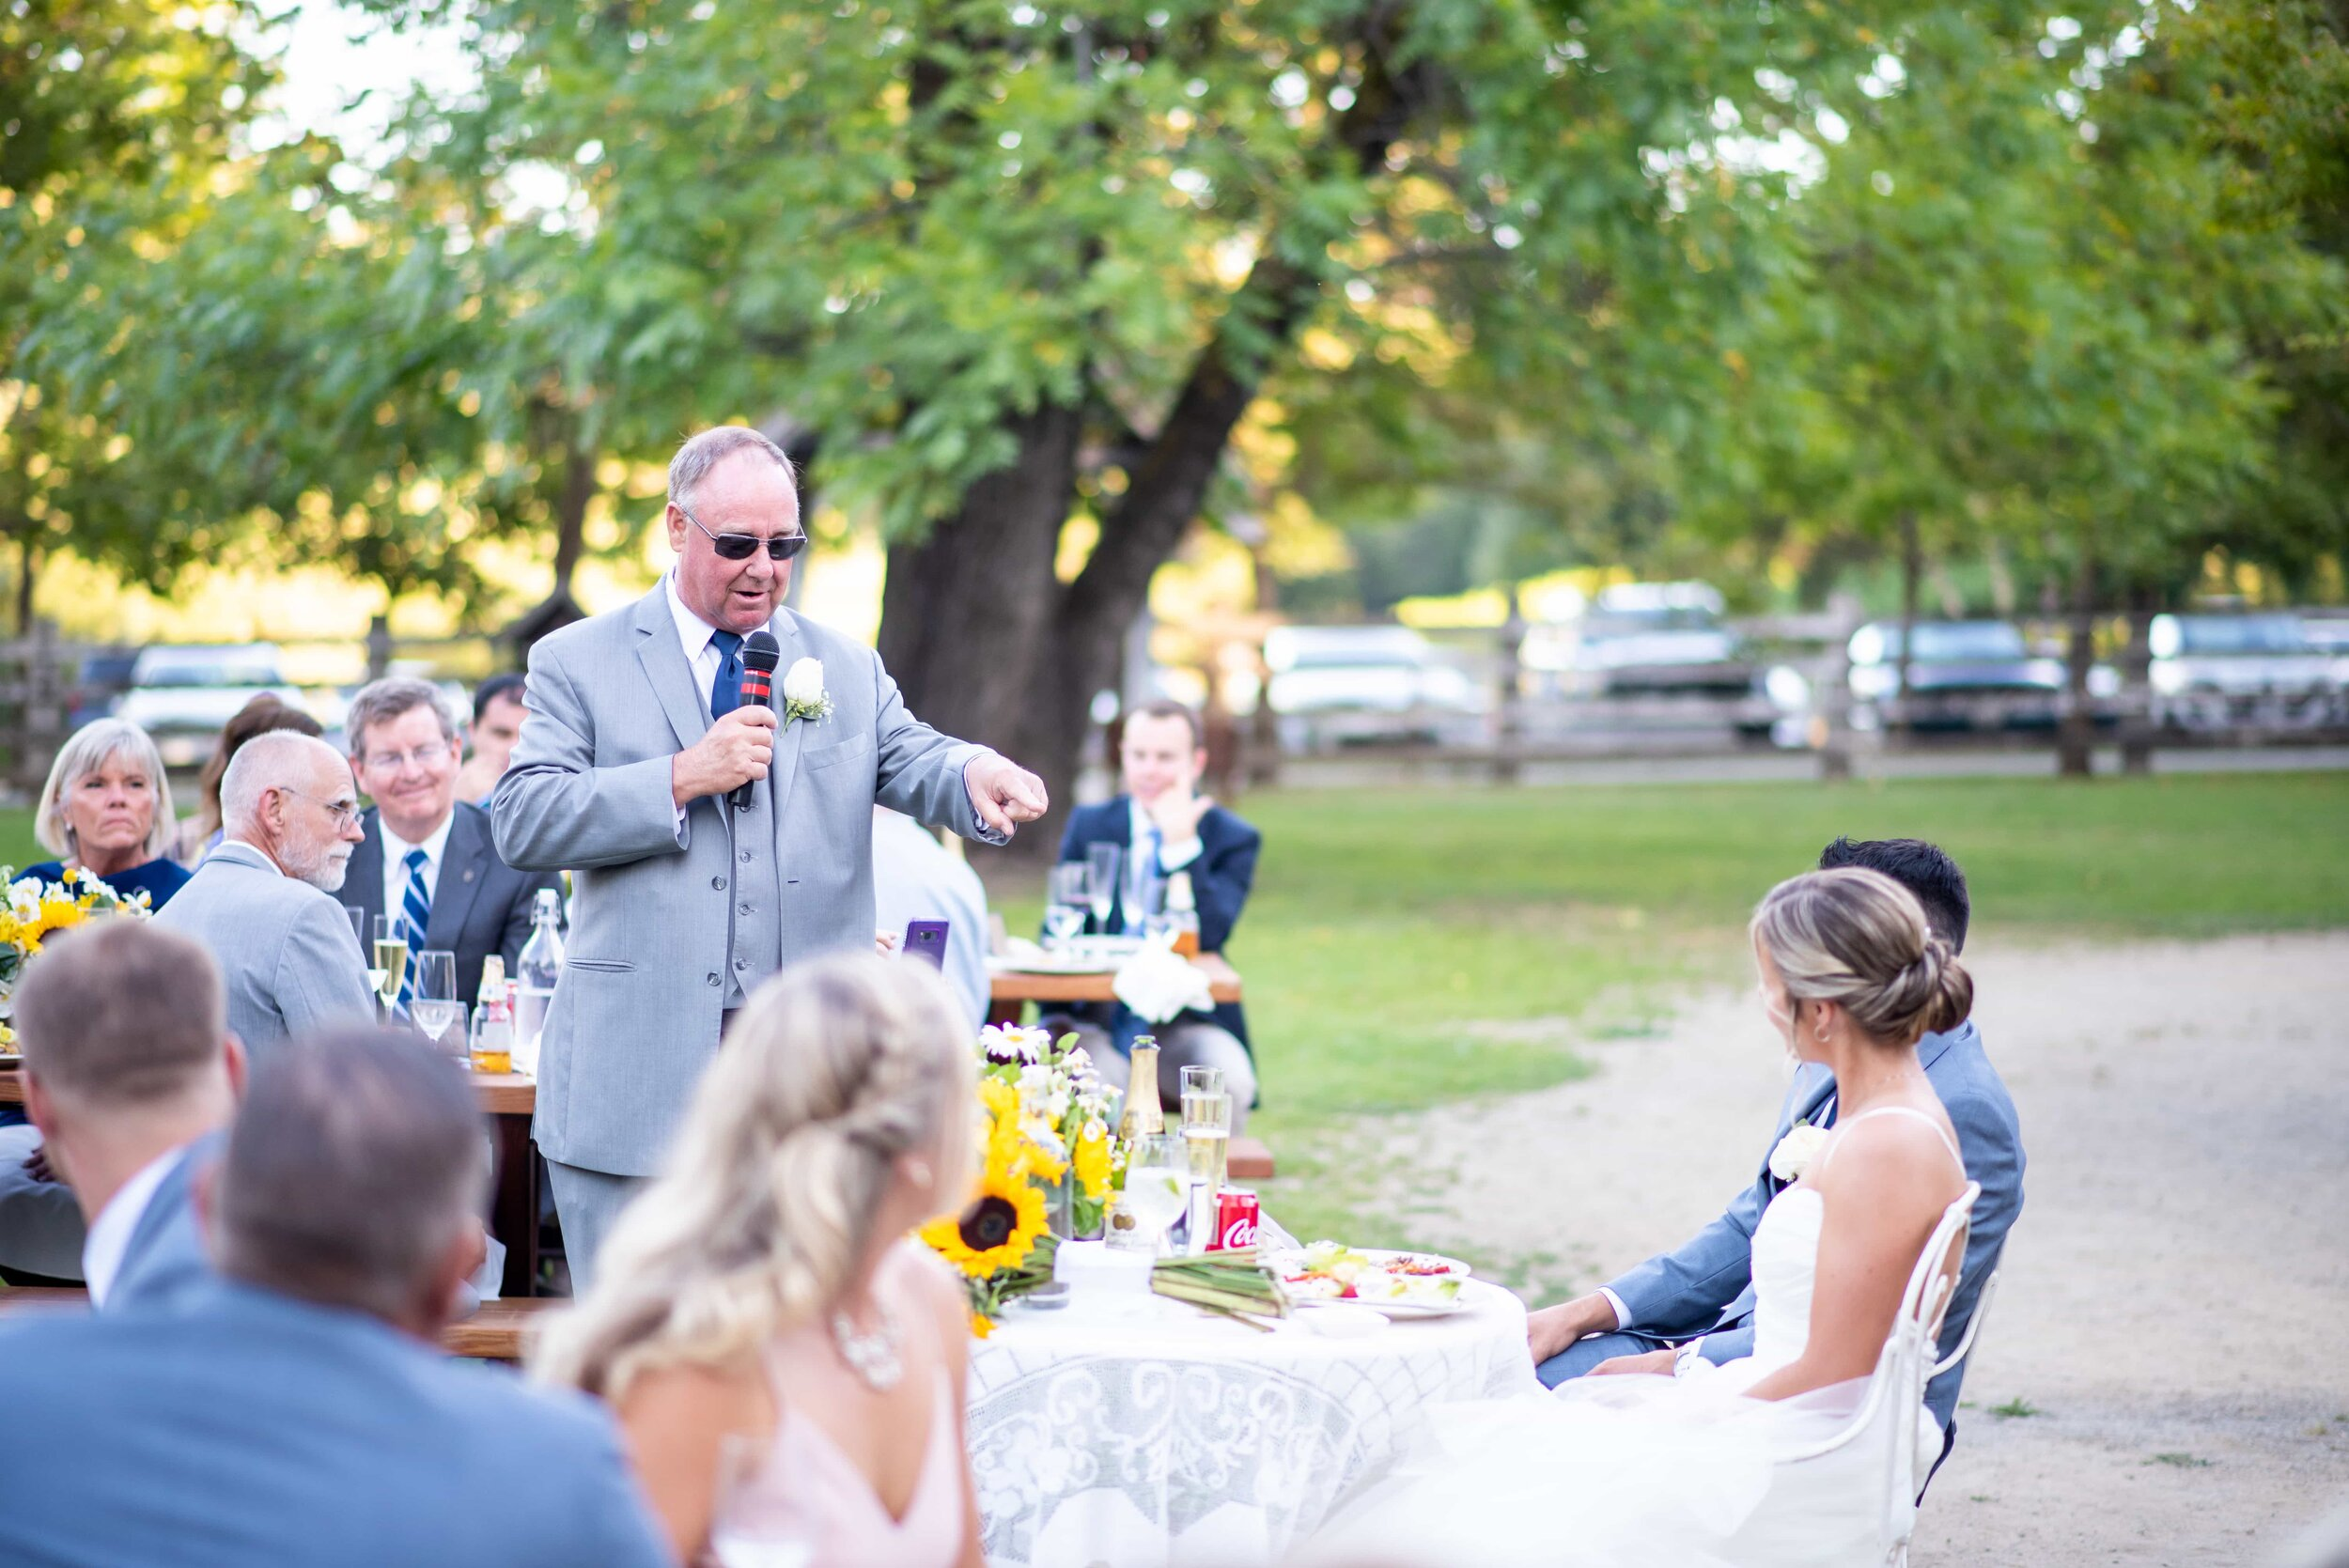 Father of bride giving toast during wedding reception